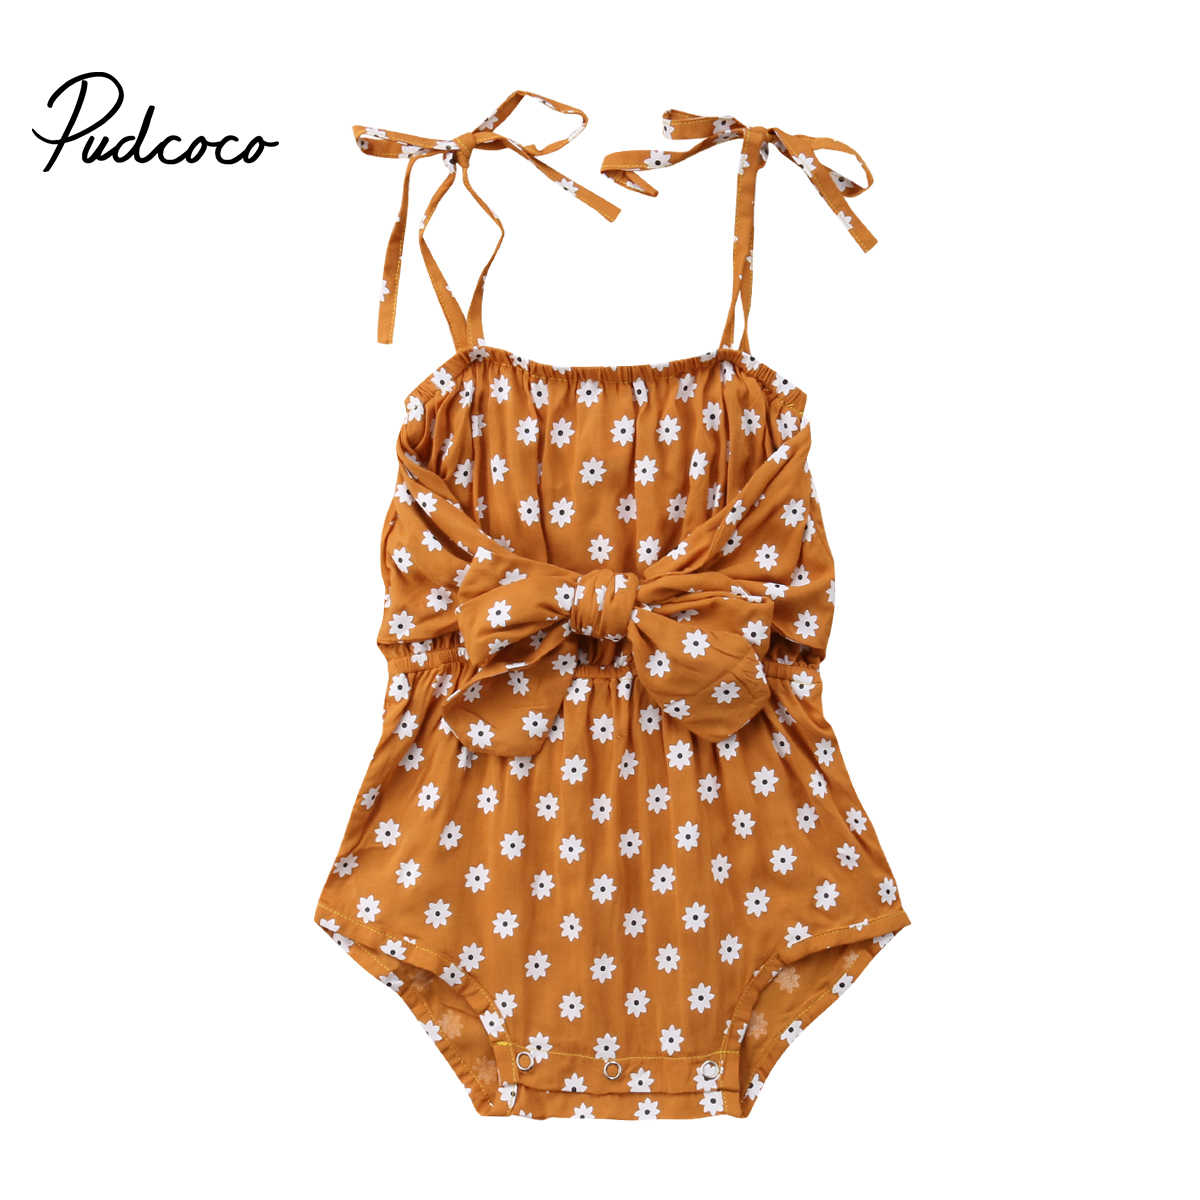 2018 Brand New 0-24M Newborn Infant Baby Girls Summer Causal Romper Sleeveless Belt Floral Print Brown Bow Belt Jumpsuits Romper